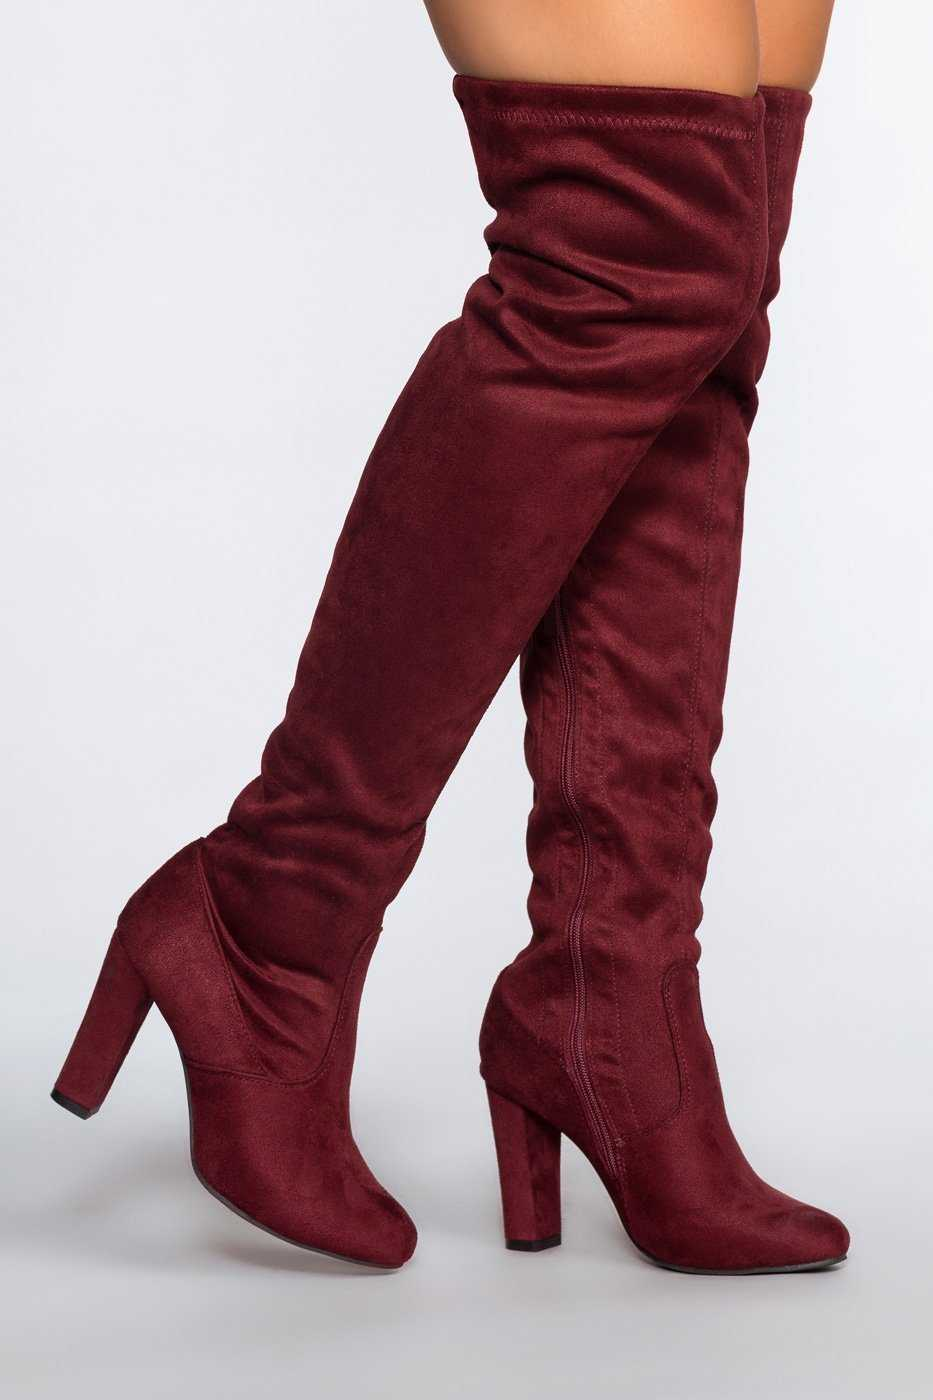 27d20d5dff2 ... Shoes - Lose Control Thigh High Boots - Wine ...